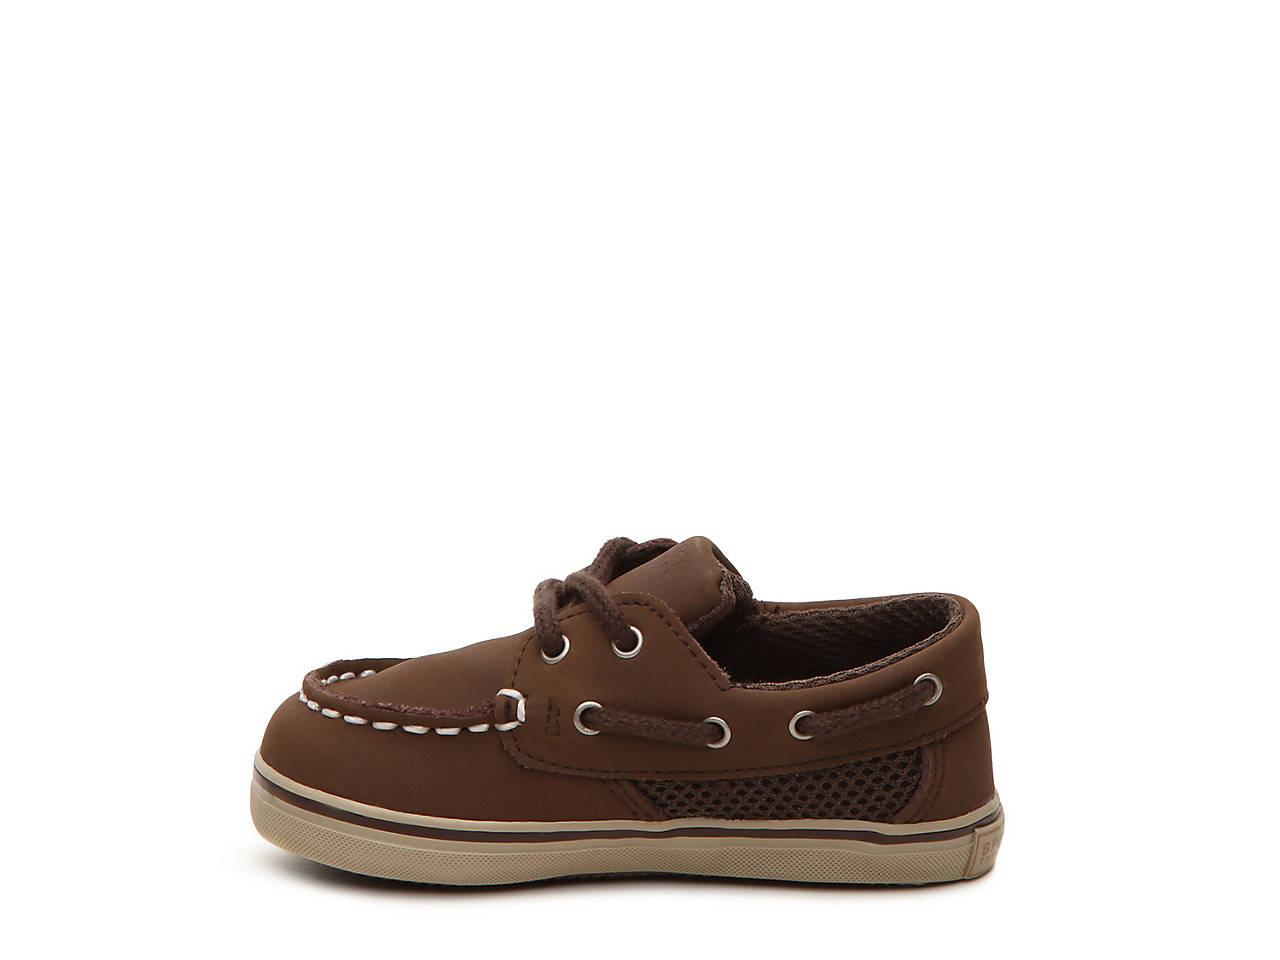 Infant Sperry Top-Sider Intrepid Crib 10//25 Boat Shoe